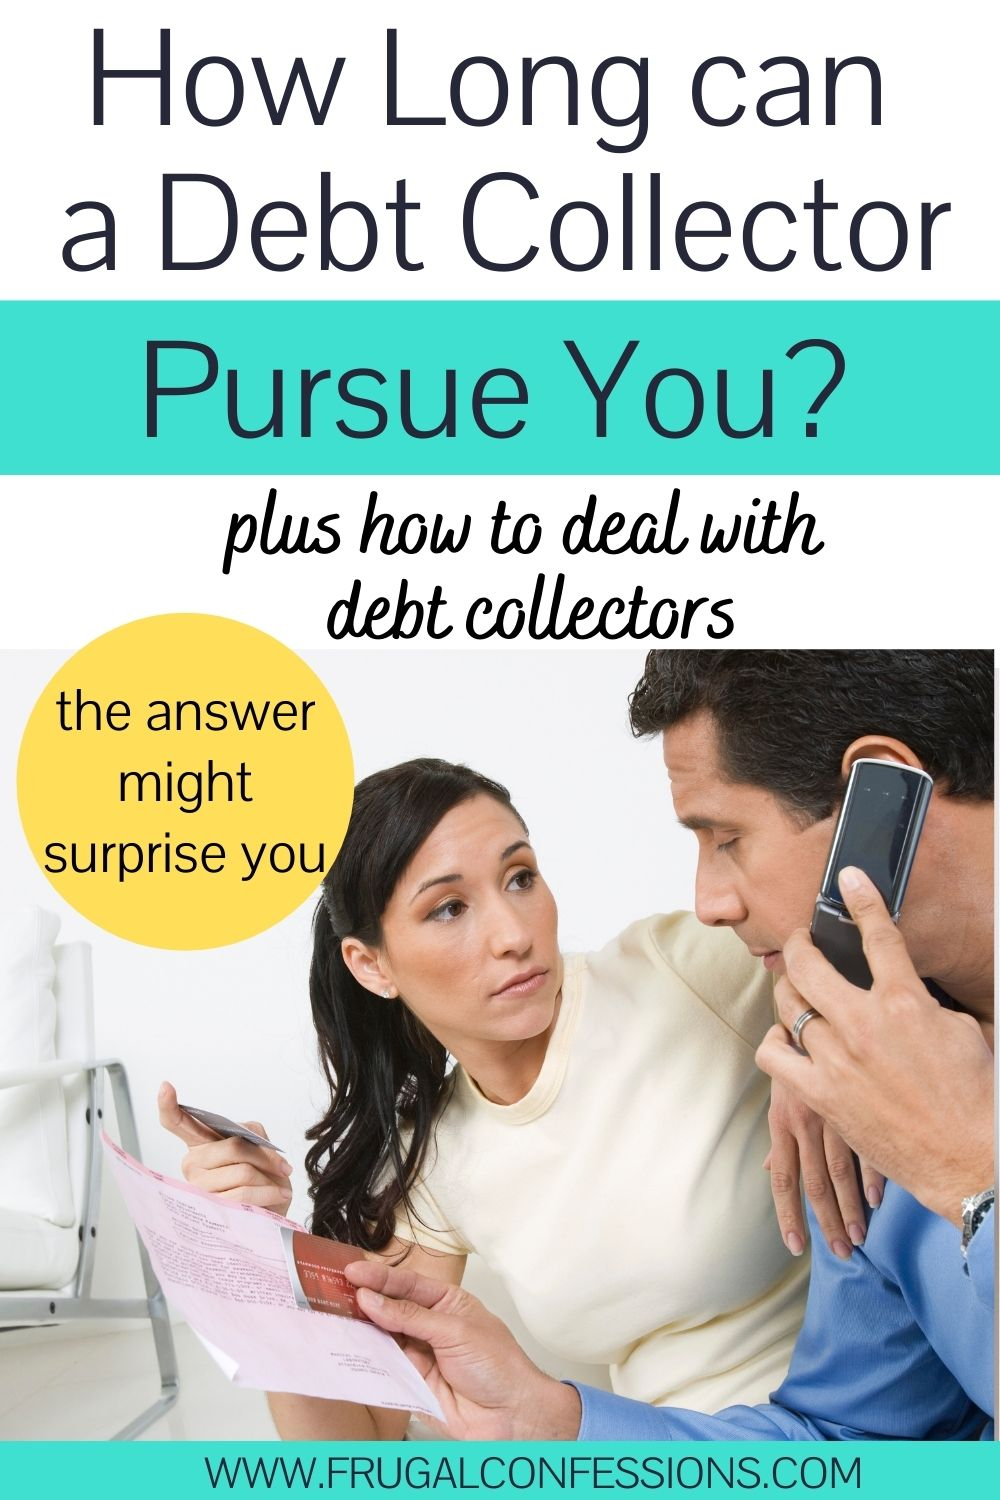 """wife and husband on phone with debt collector, text overlay """"how long can a debt collector pursue you?"""""""